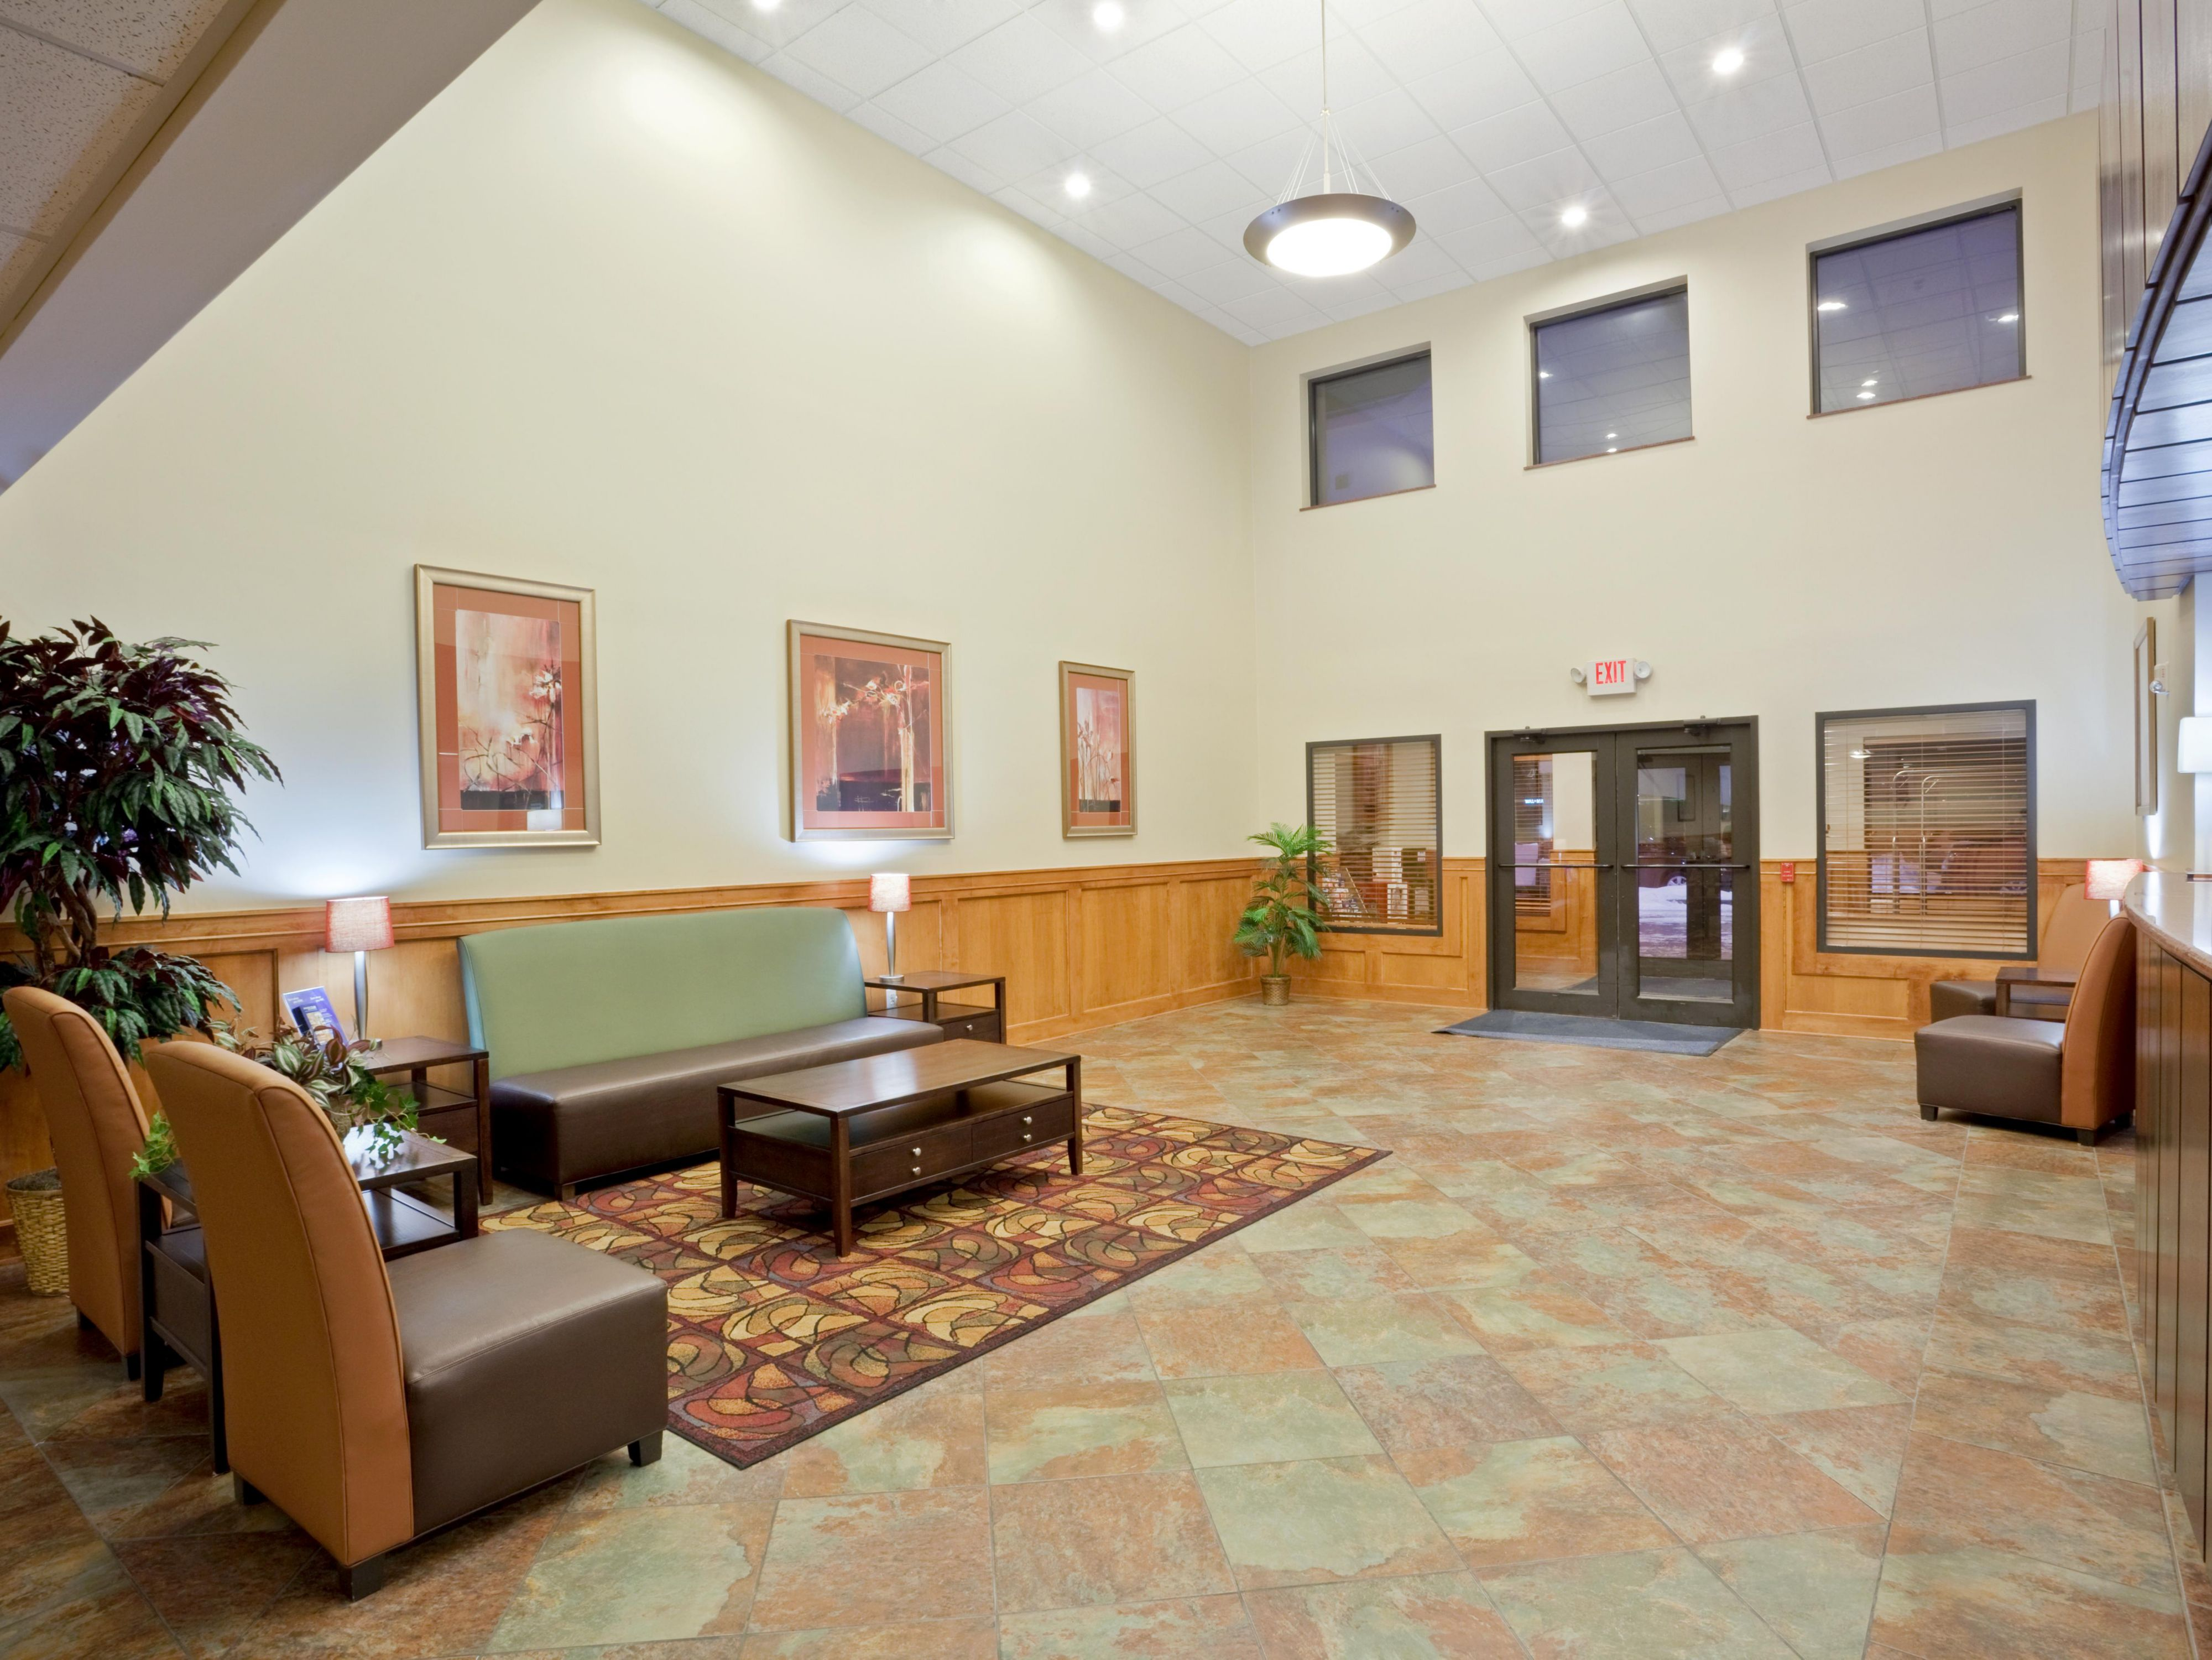 Manager's Reception / Lobby Lounge